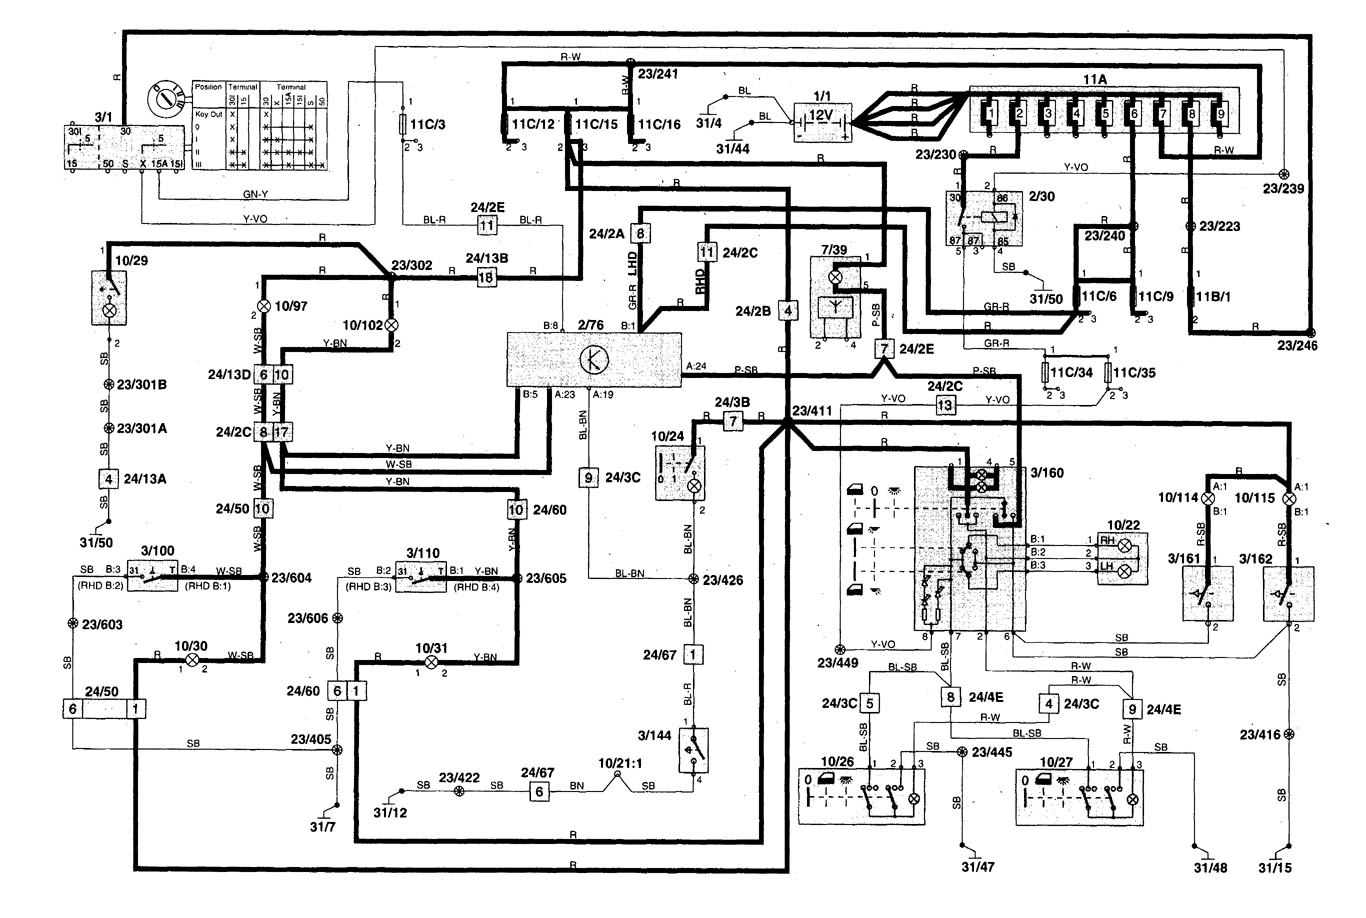 1985 chevy c70 wiring diagram trusted wiring diagram wiring-diagram alfa romeo spider 1985 c70 wiring diagram wiring diagram & electricity basics 101 \\u2022 1985 chevy c70 wiring diagram